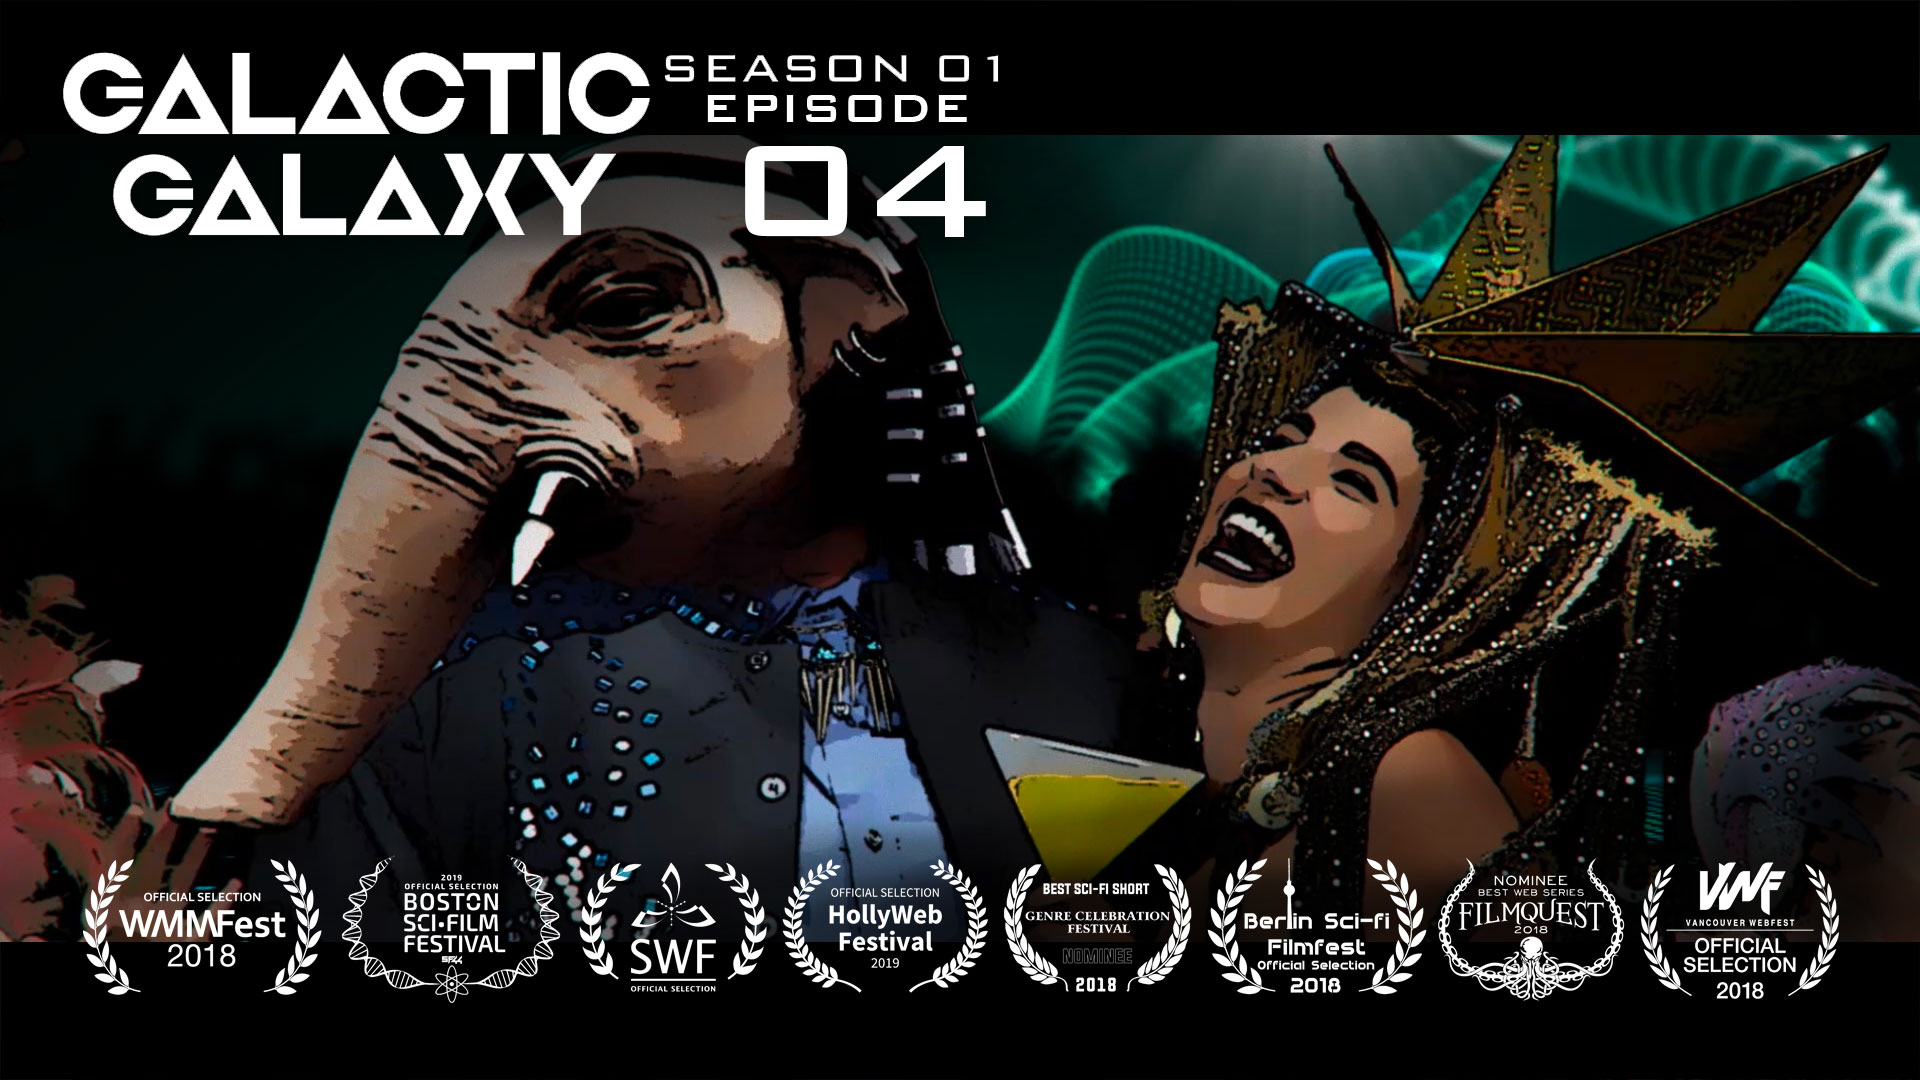 Galactic Galaxy 04: The Most Hedonistic Disco in the Galaxy